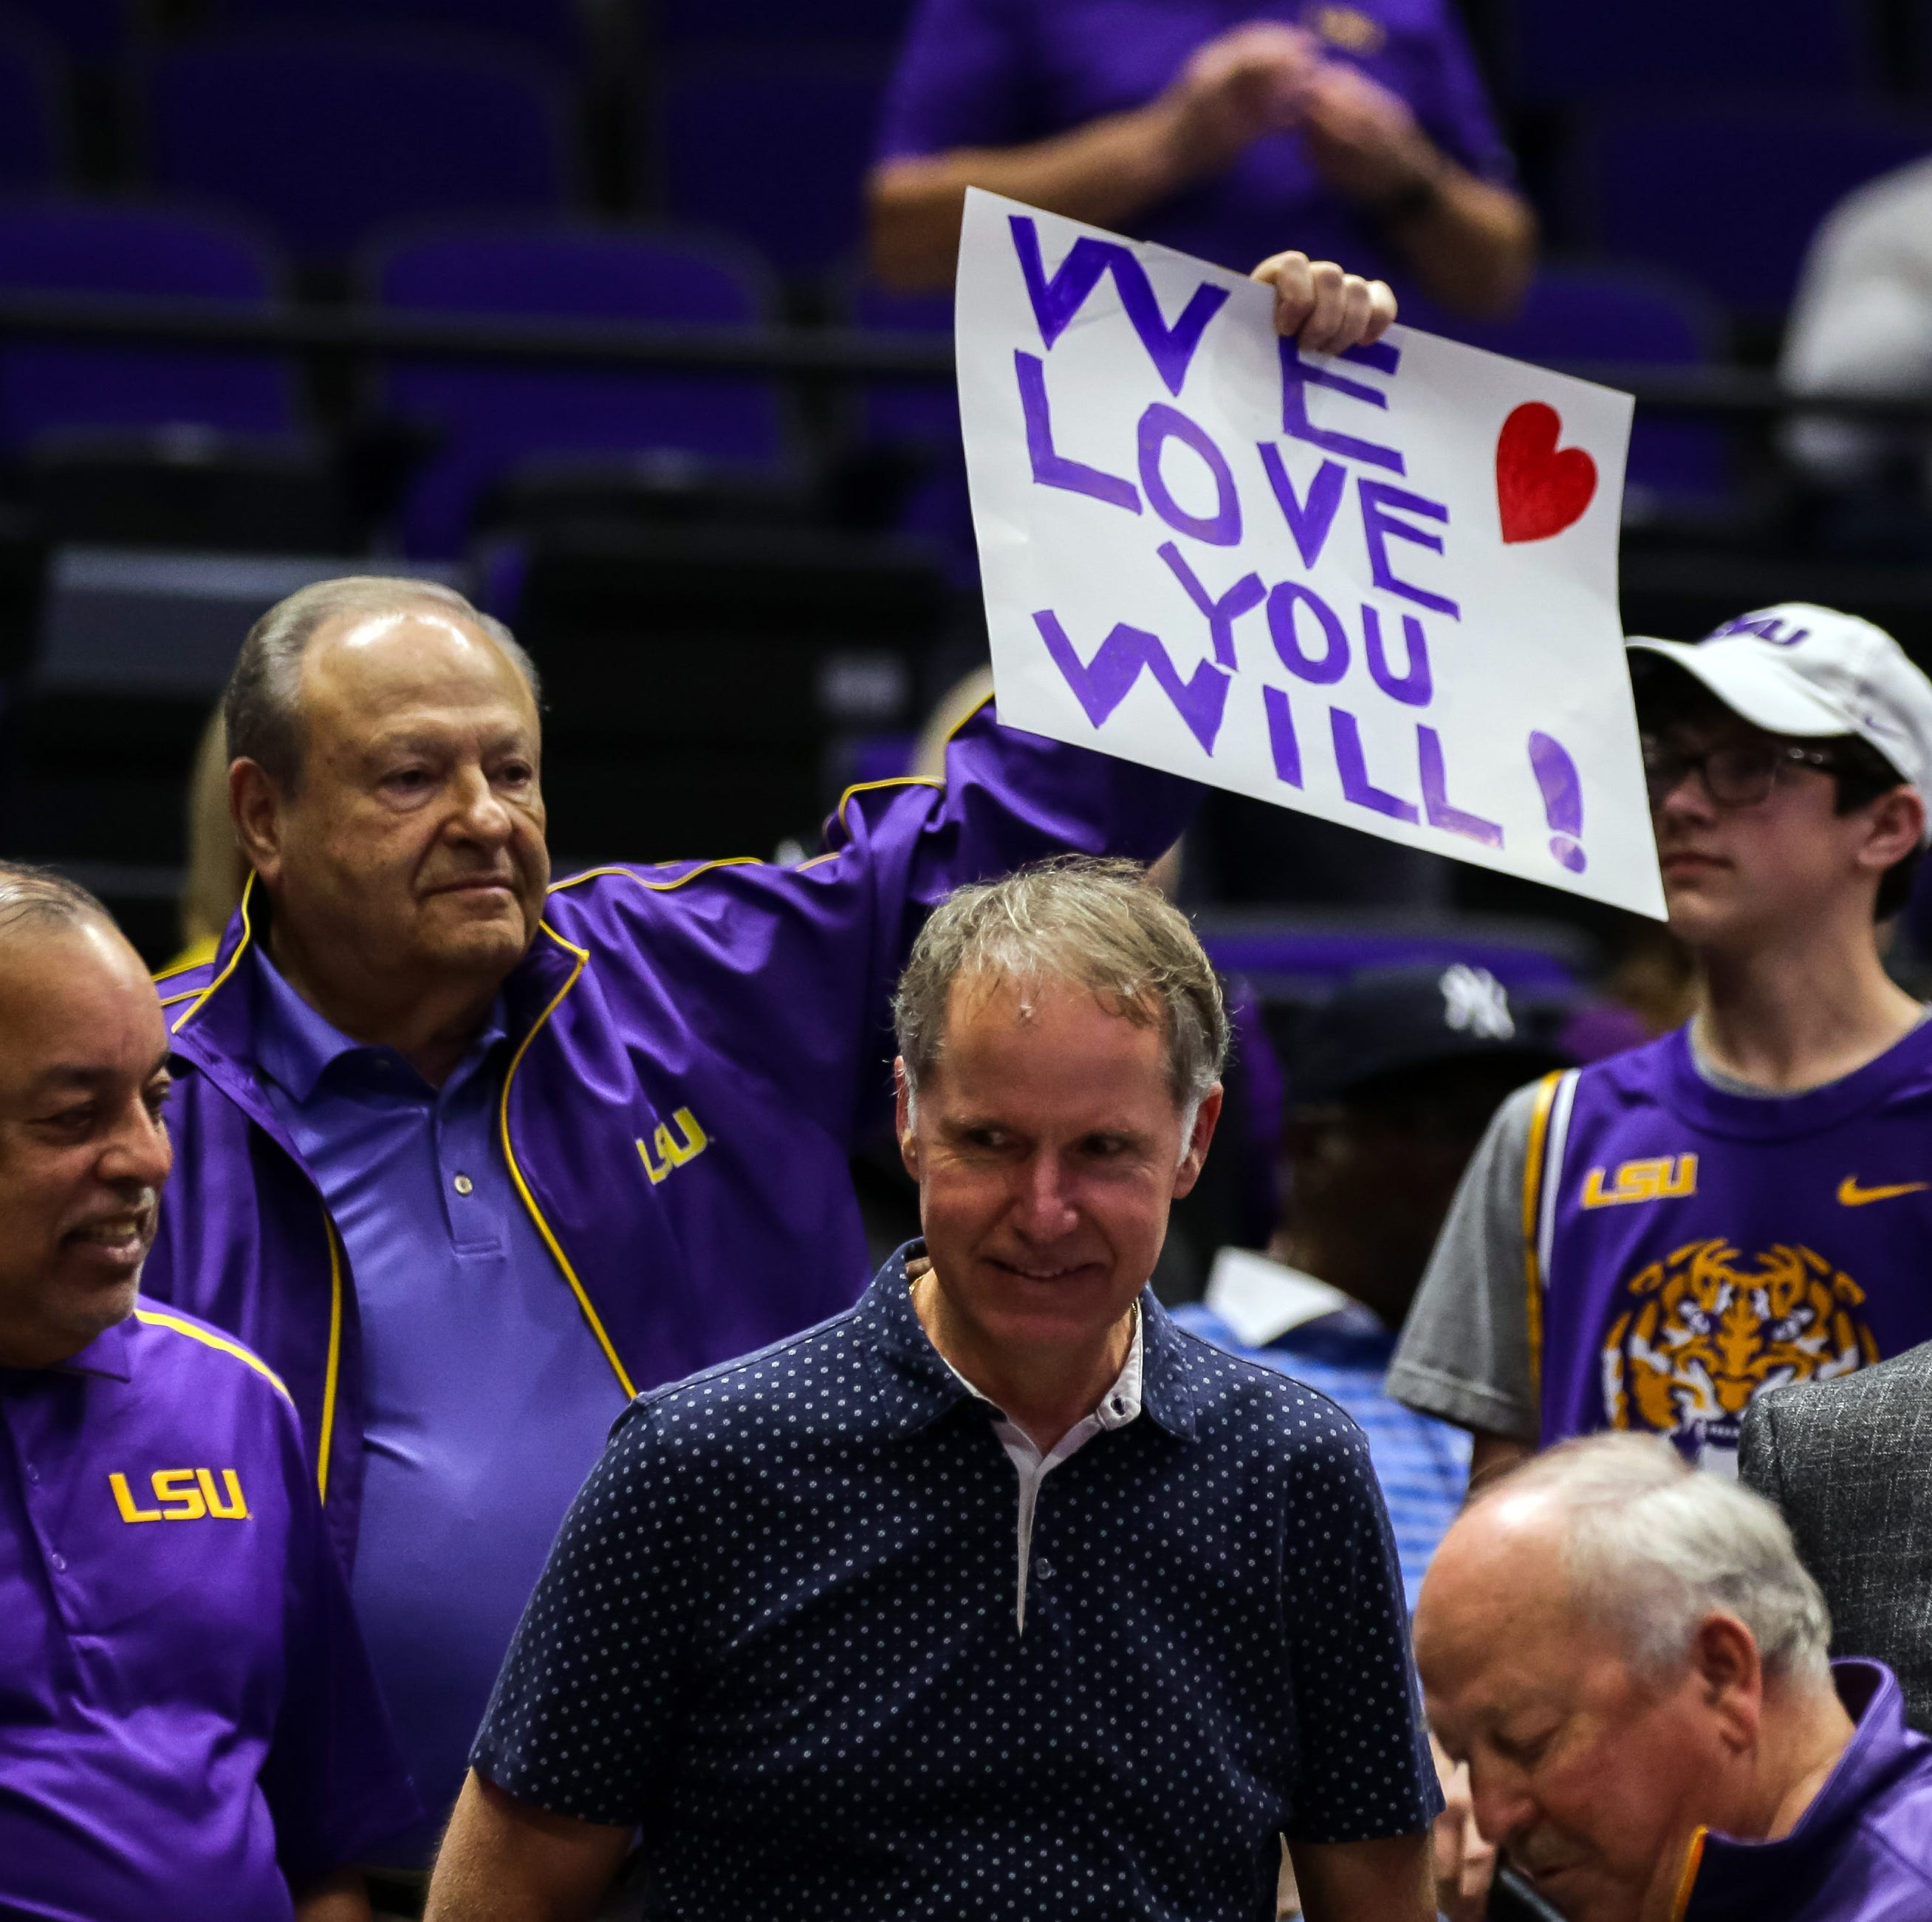 'Door is open' for suspended LSU coach to take first step to reinstatement, but he has not